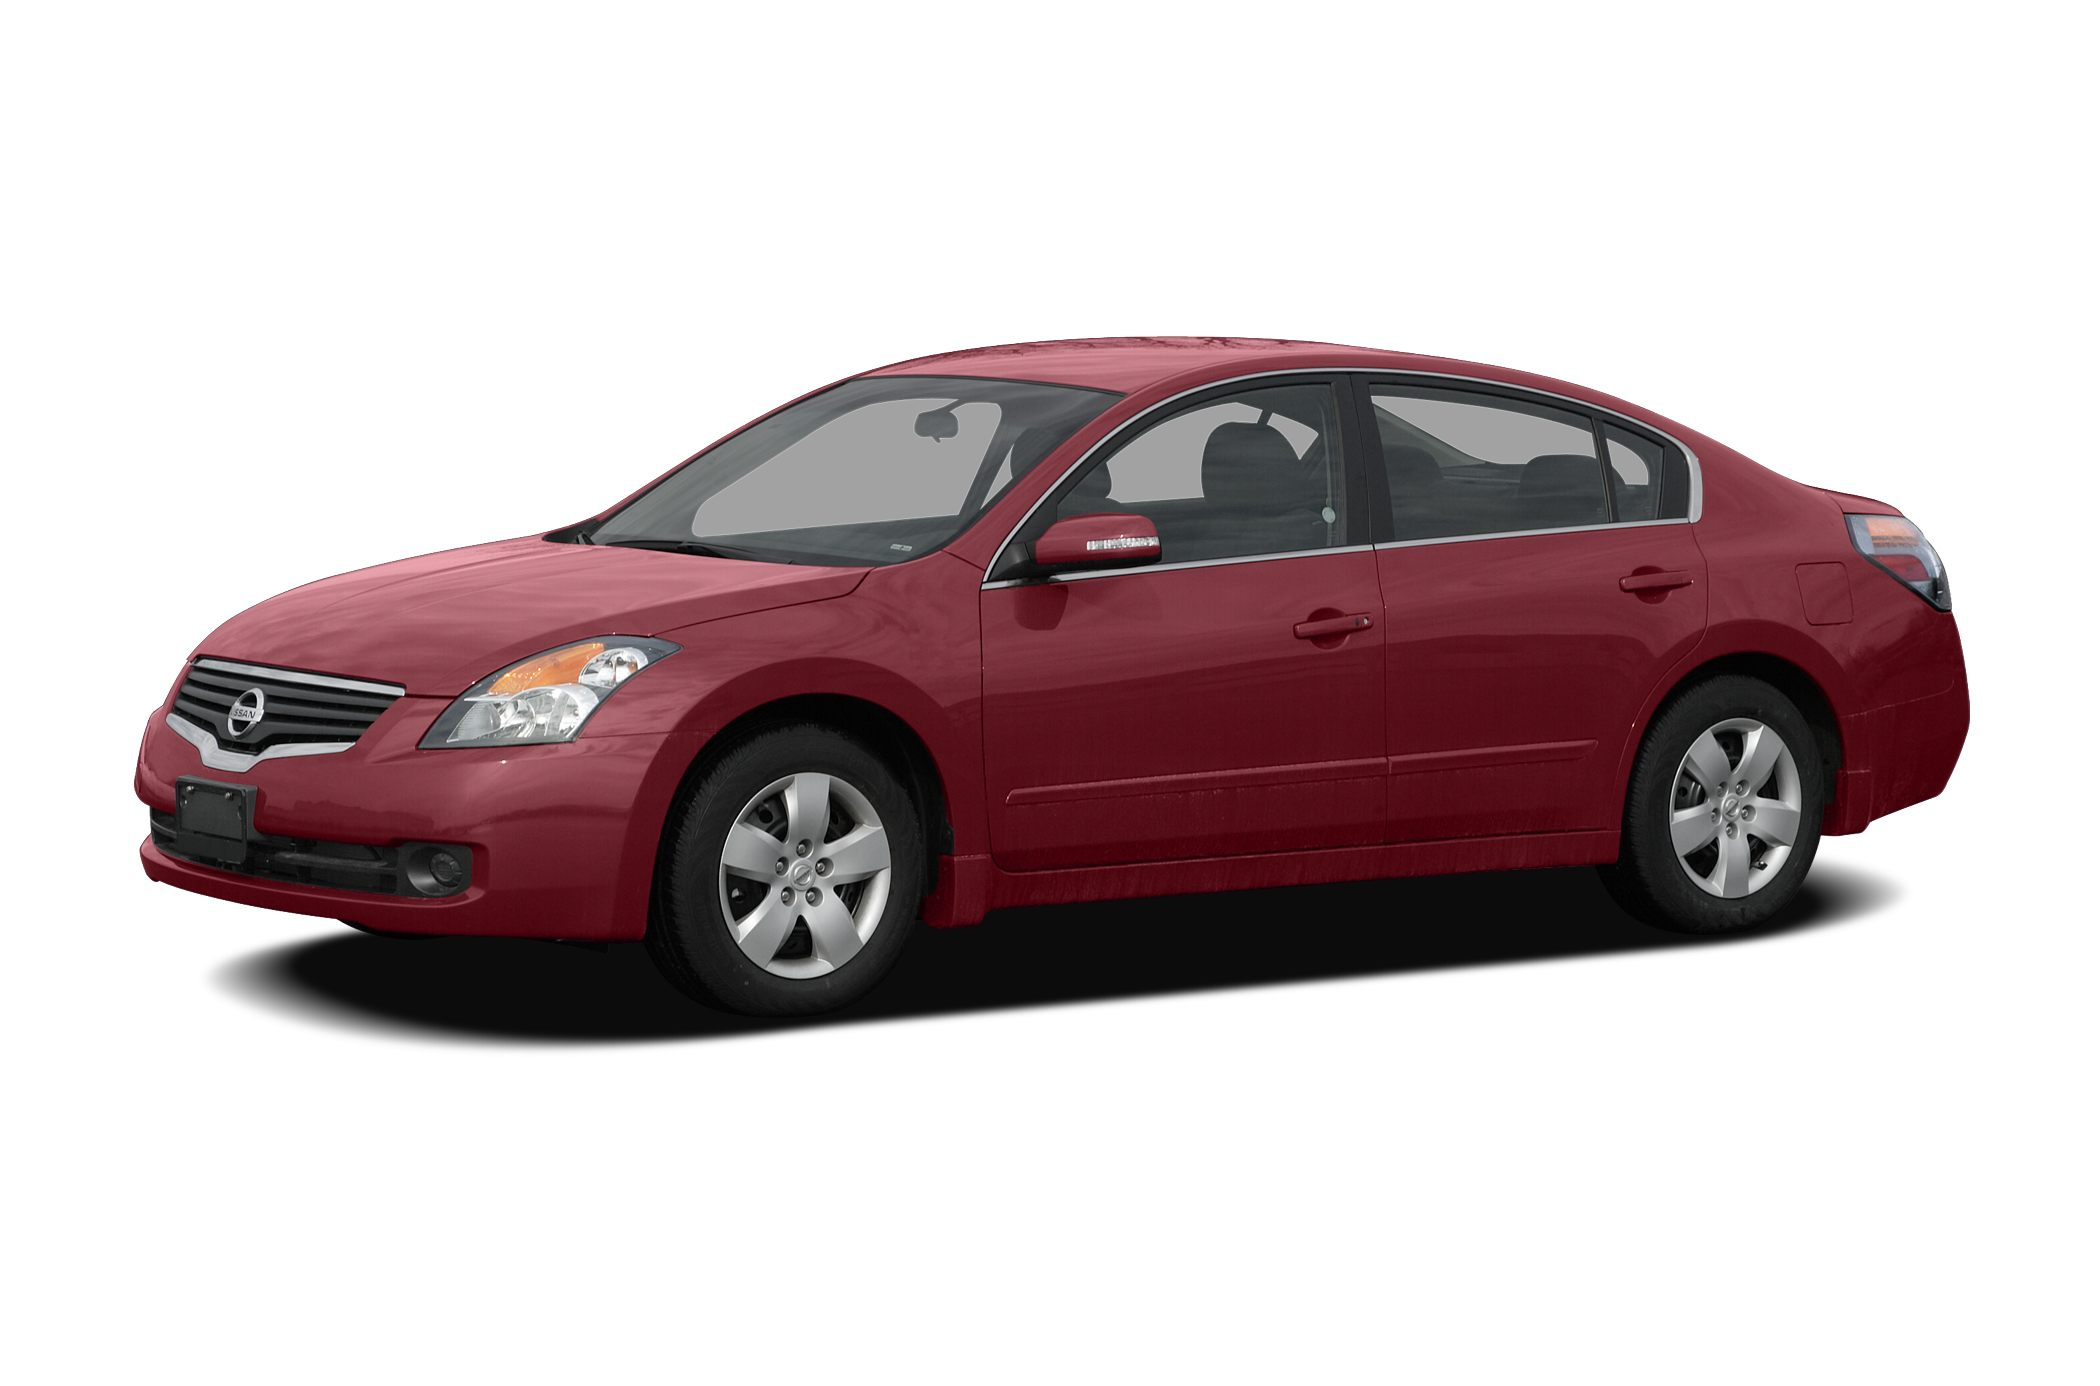 2007 Nissan Altima Specs And Prices